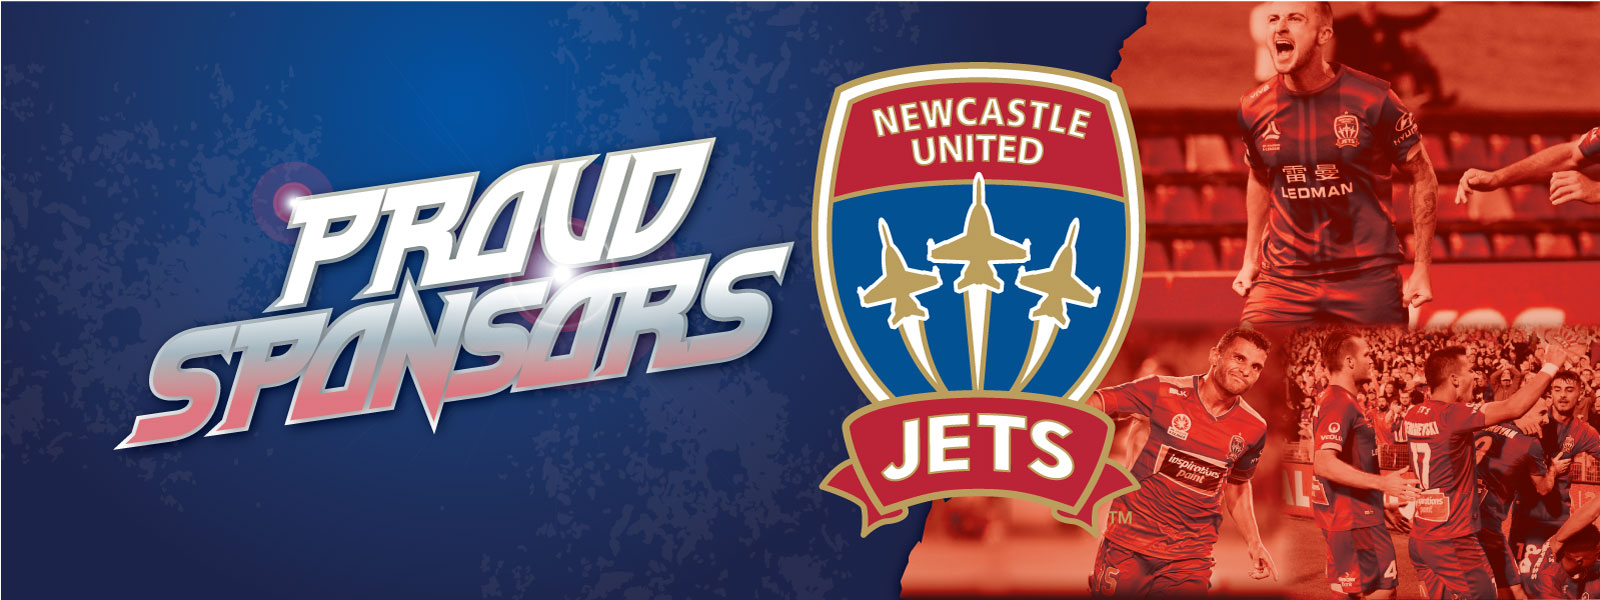 Proud Sponsors Newcastle United JETS